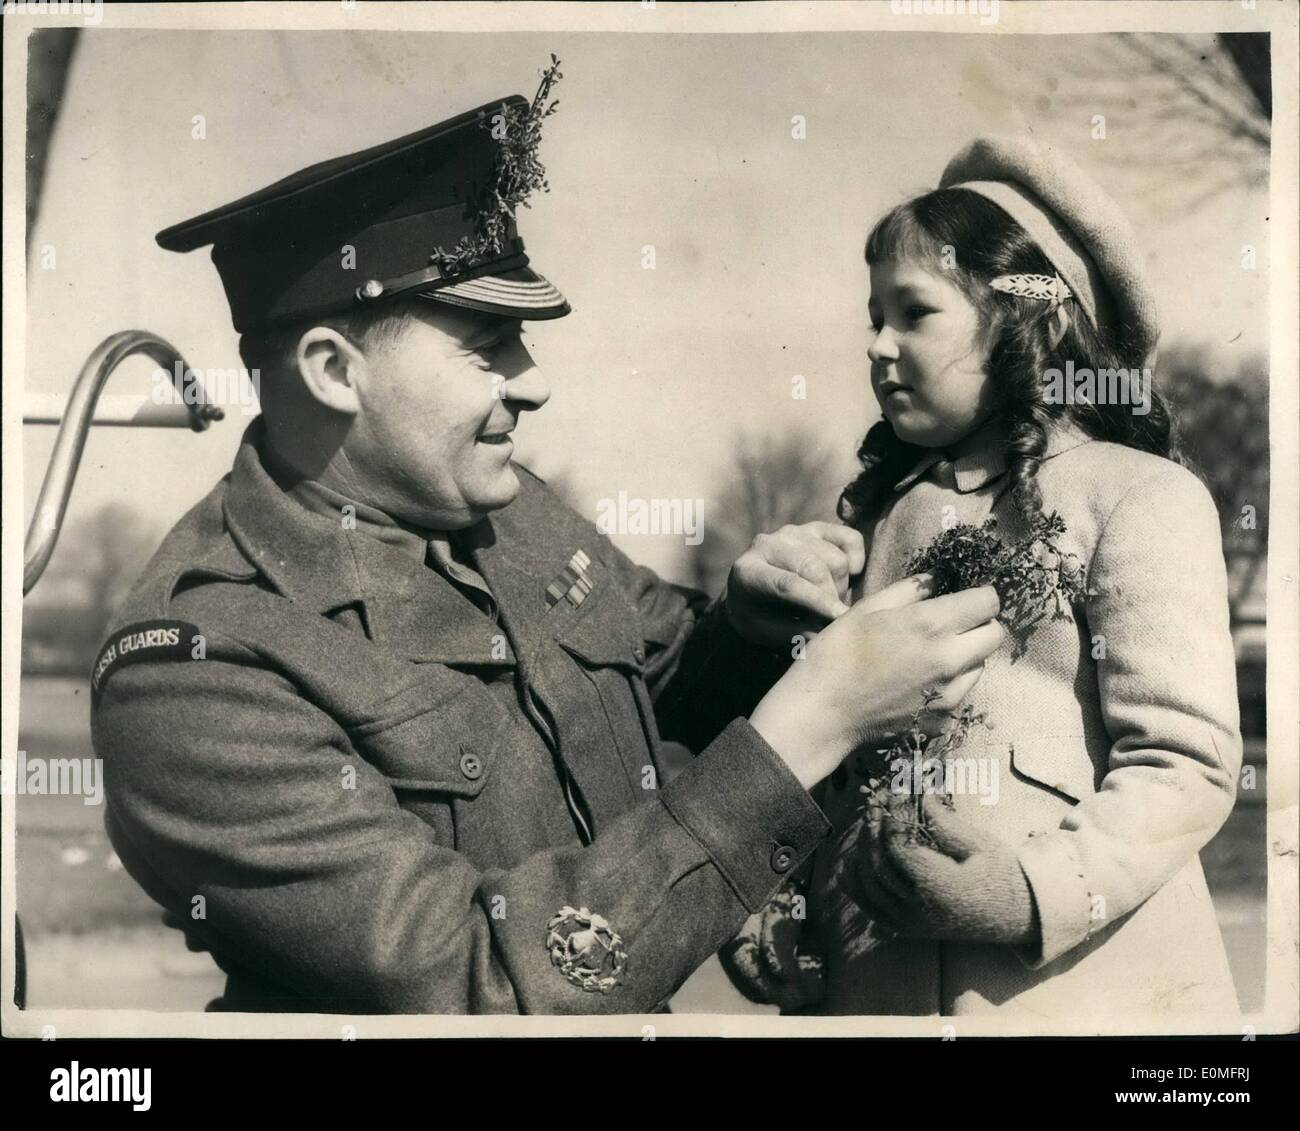 Mar. 03, 1955 - Daughter of Lord Roberts presents shamrock to the Irish Guards. St. Patrick's day at Catherham. Coutess Roberts - Stock Image